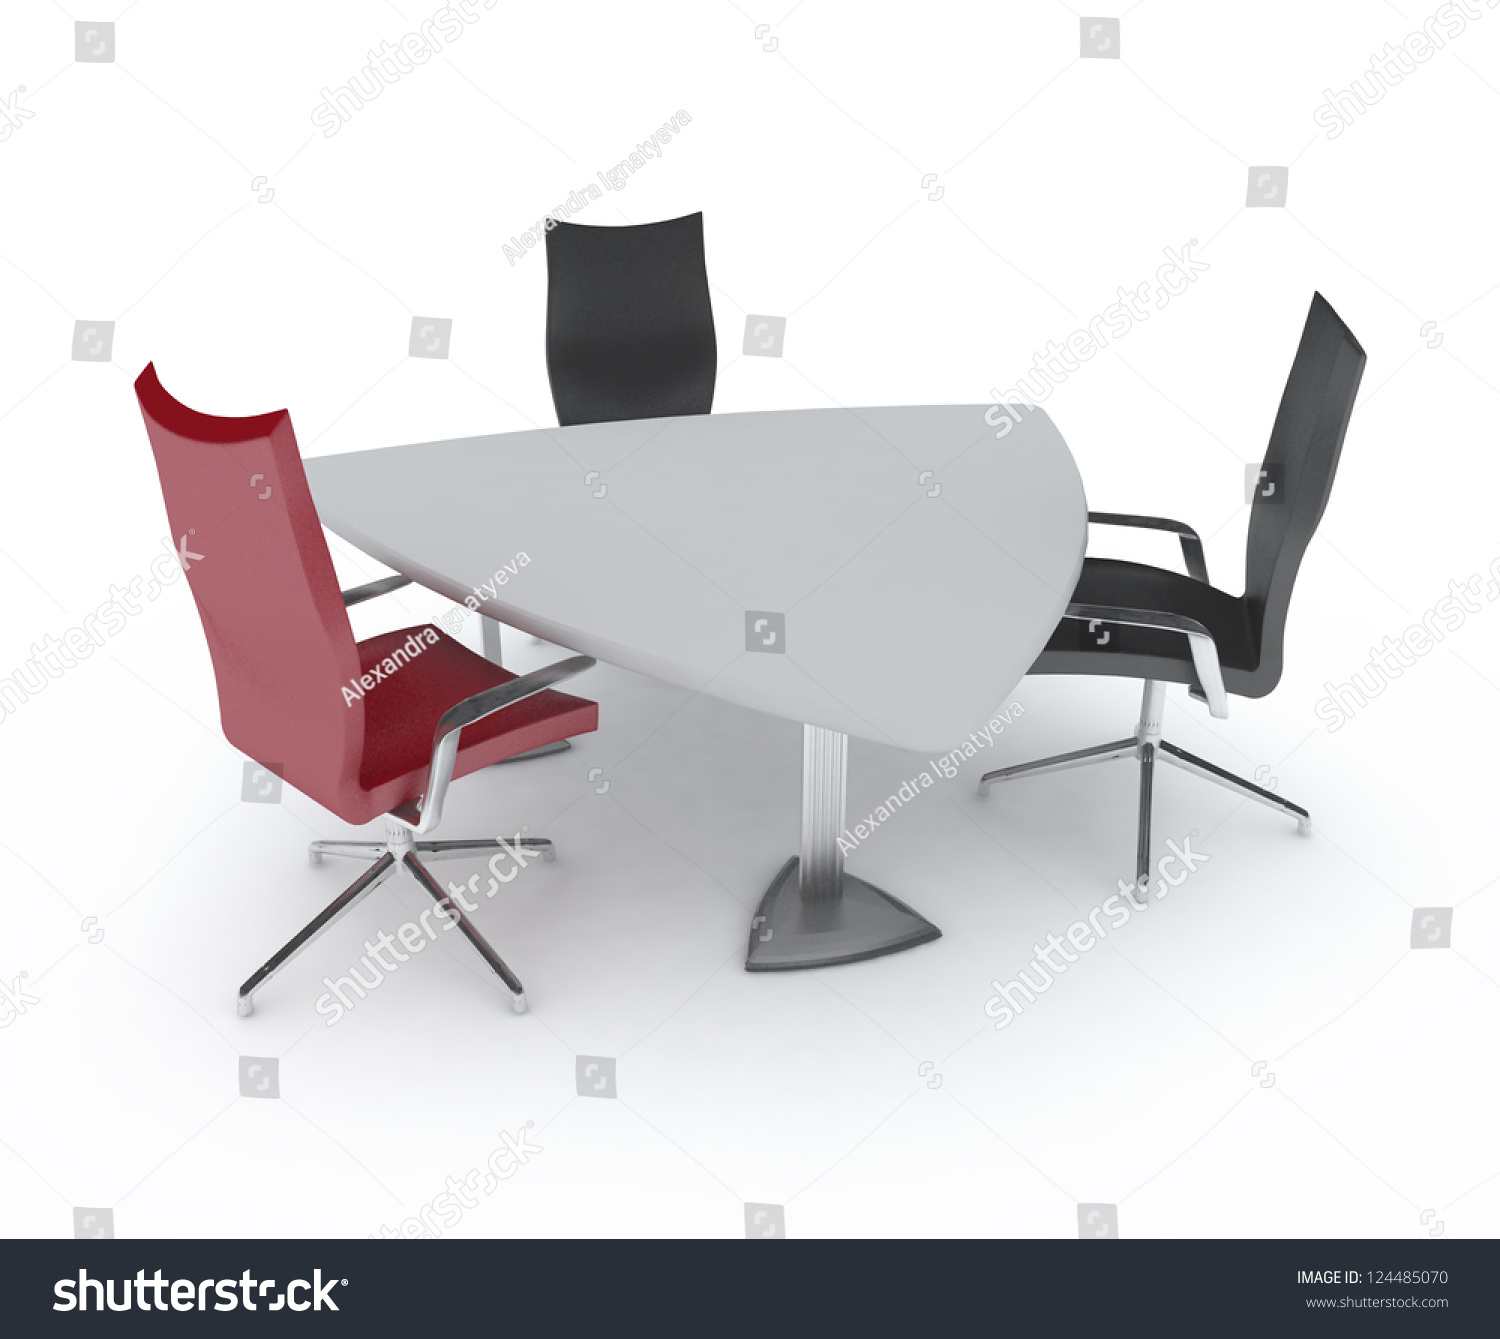 Triangular Table Chairs Empty Meeting Room Stock Illustration